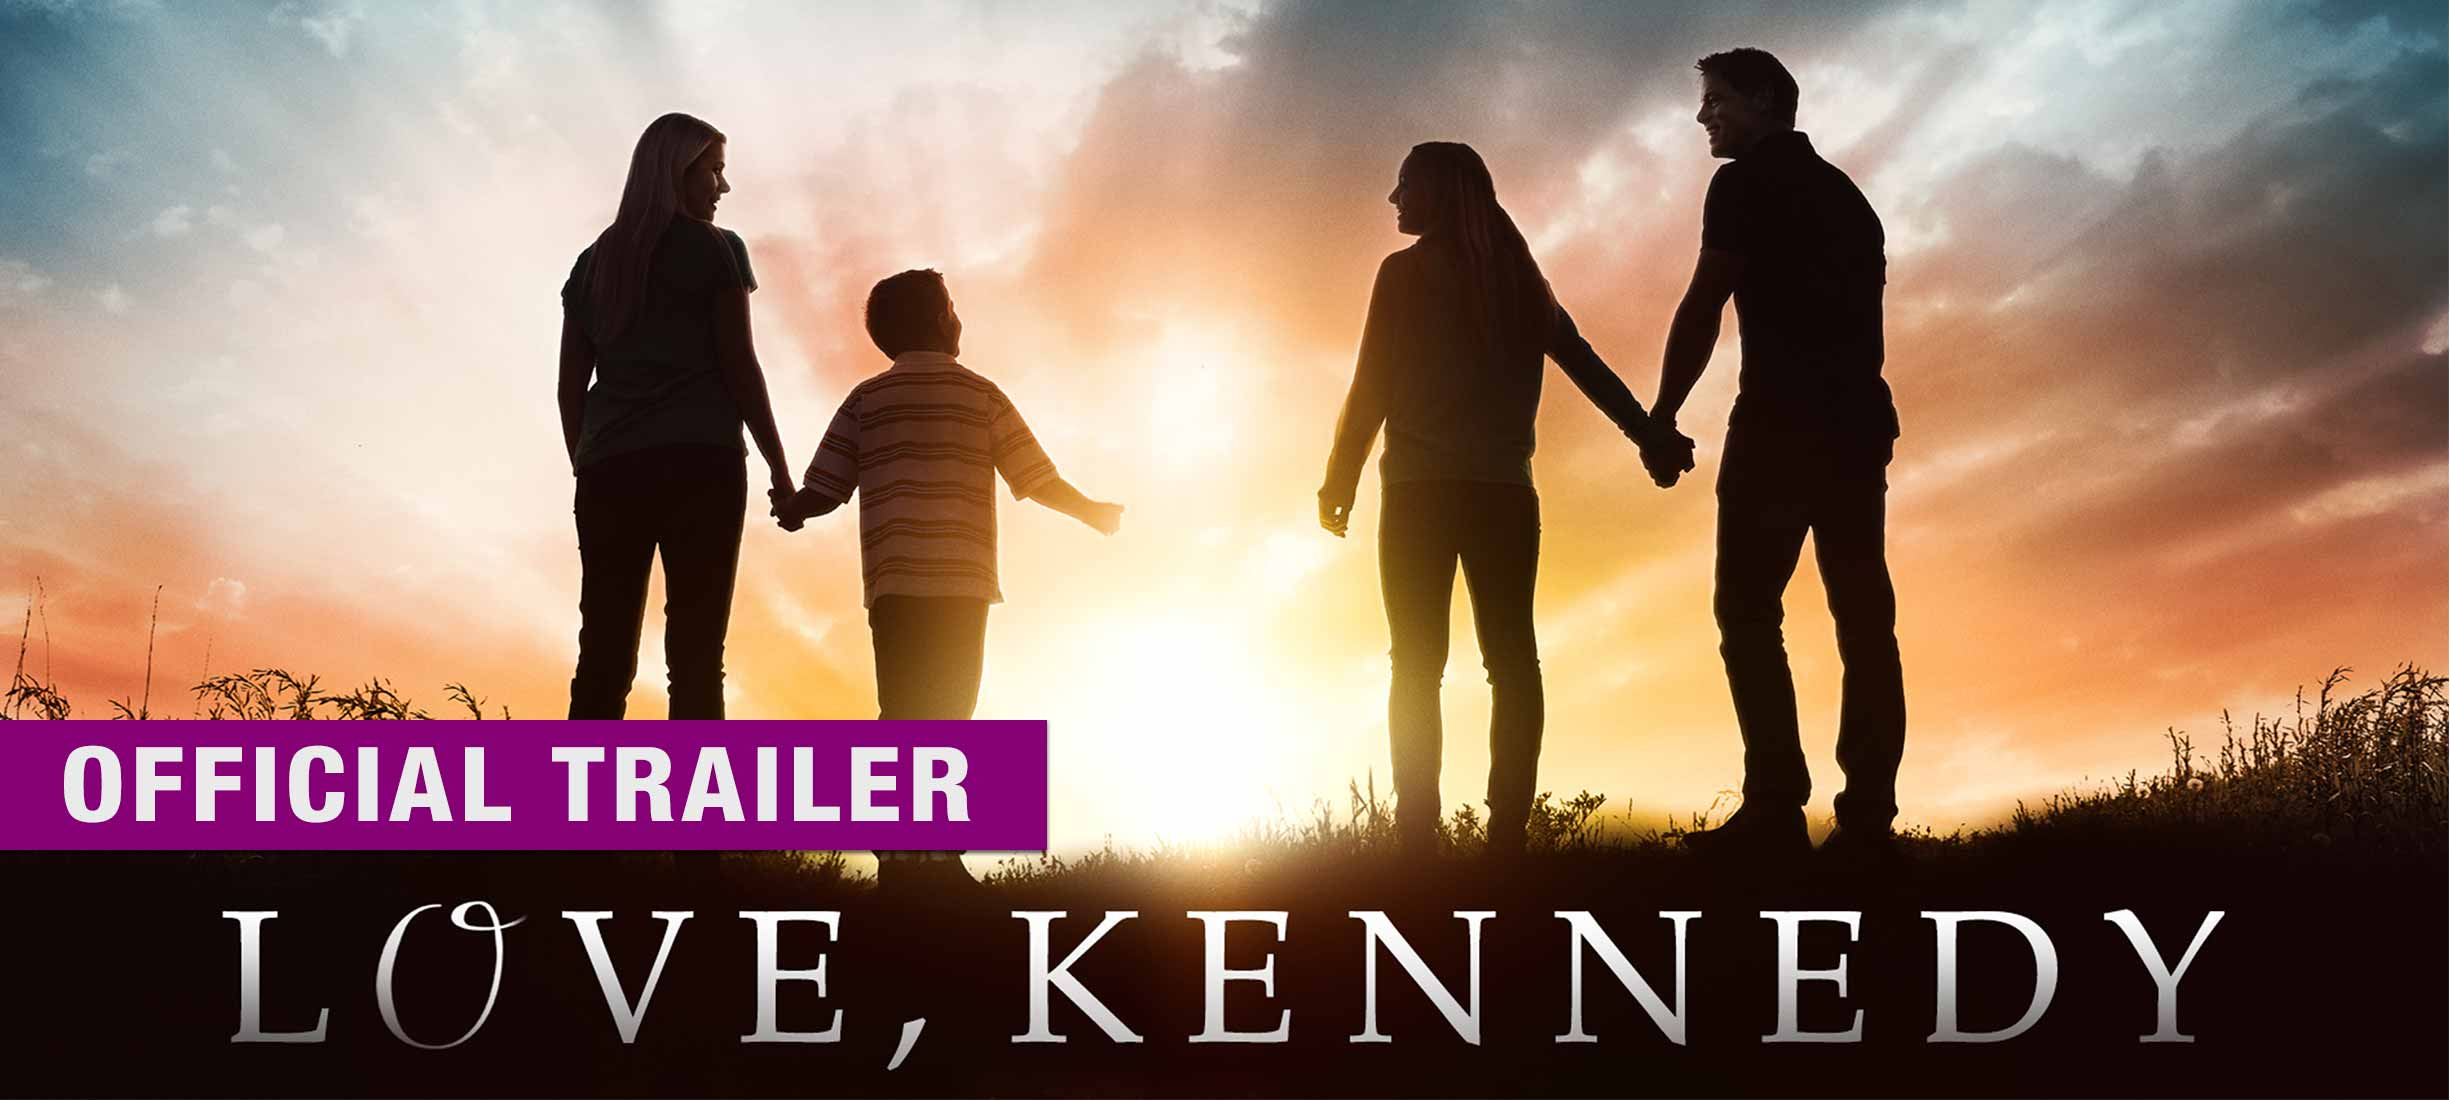 Love, Kennedy: Trailer